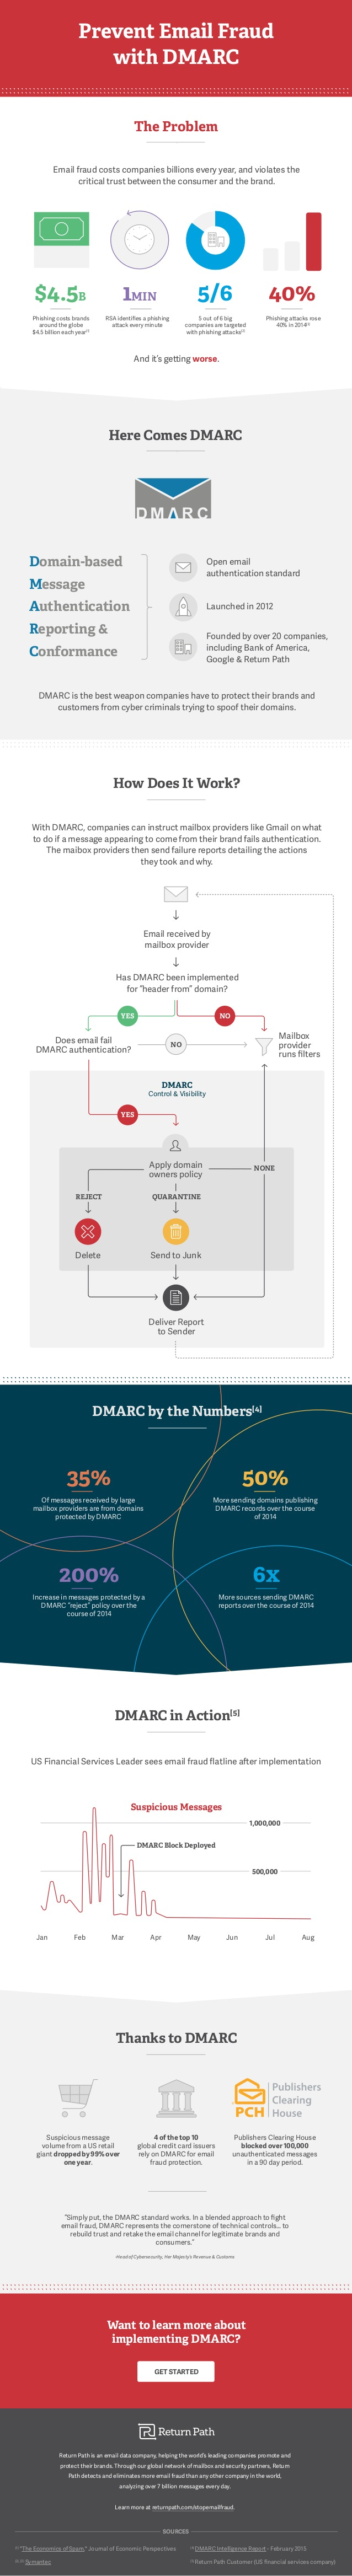 Prevent Email Fraud with DMARC Infographic